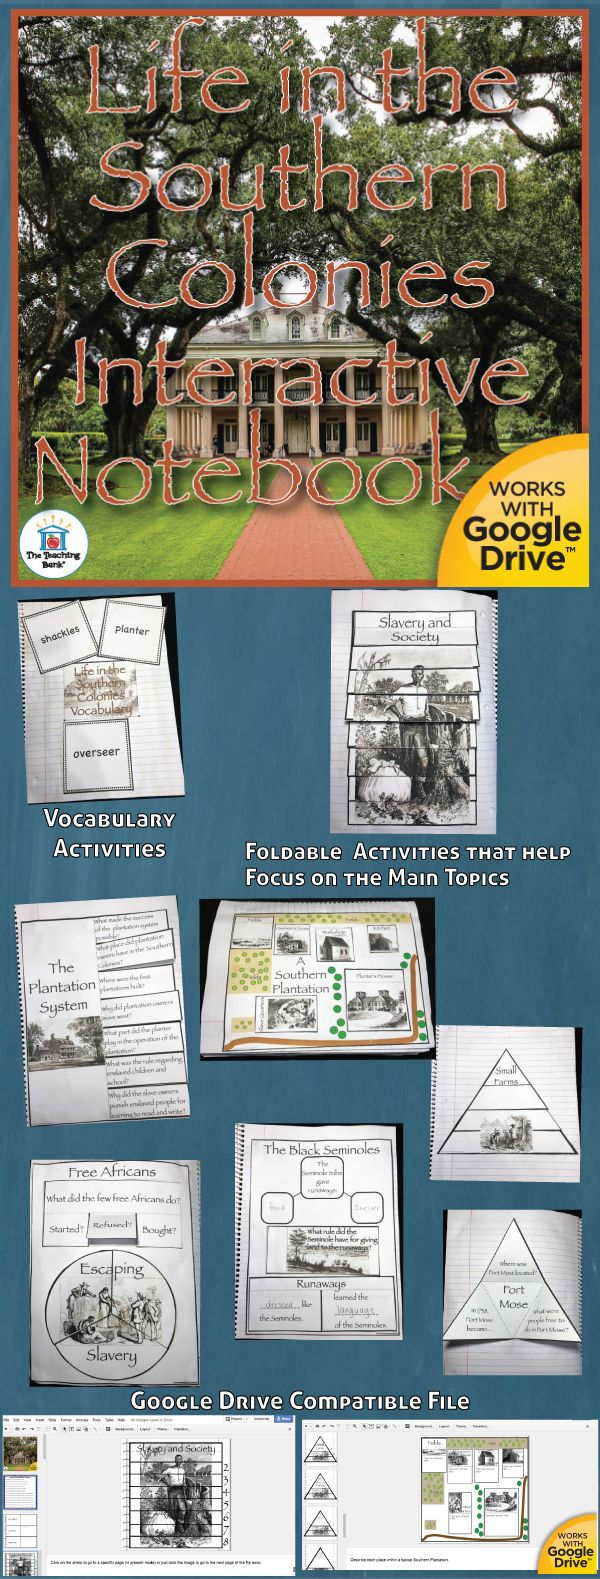 Life in the Southern Colonies Interactive Notebook, which works for both print and Google Drive™, investigates and helps gain understanding of the early colonist settlements of the Southern Colonies. Geared as a unit in the 5th grade study of United States History.